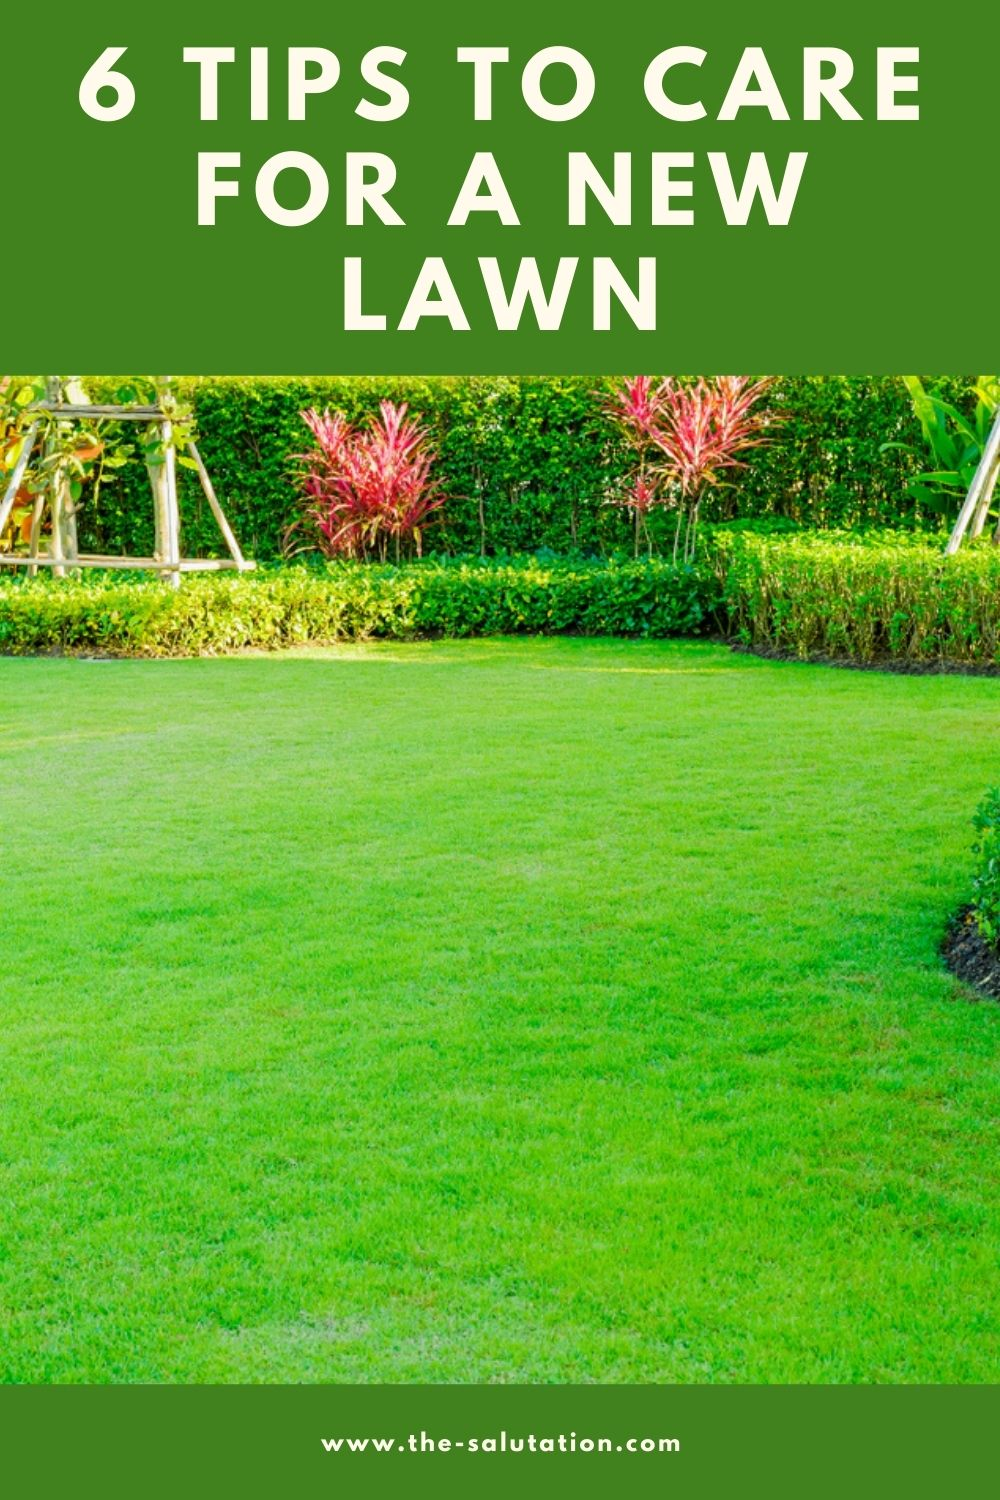 6 Tips to Care for a New Lawn 1